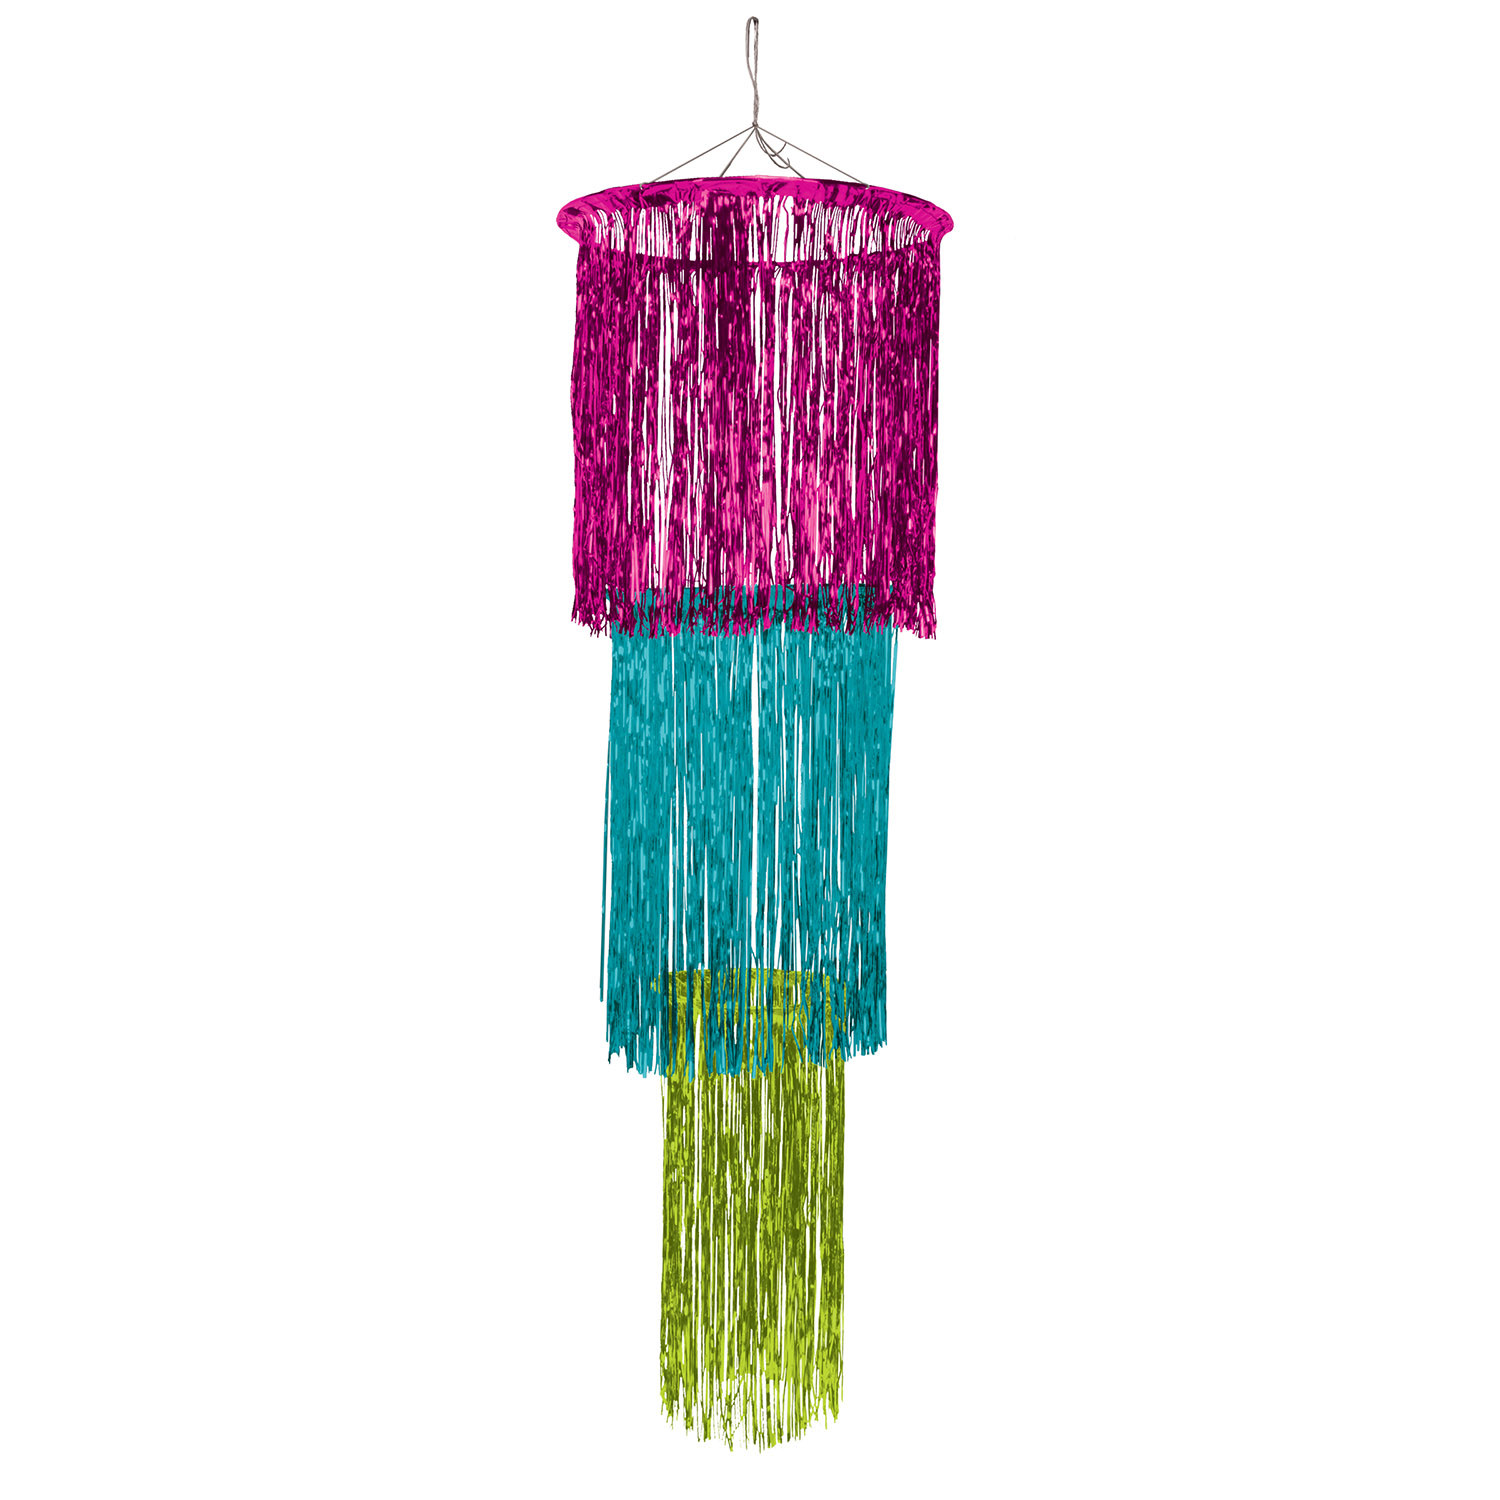 3-Tier Cerise, Light Green, and Teal Shimmering Chandelier (Pack of 6) Chandelier, Cerise, Turquoise, Light Green, Shimmering, Luau, Summer, Party